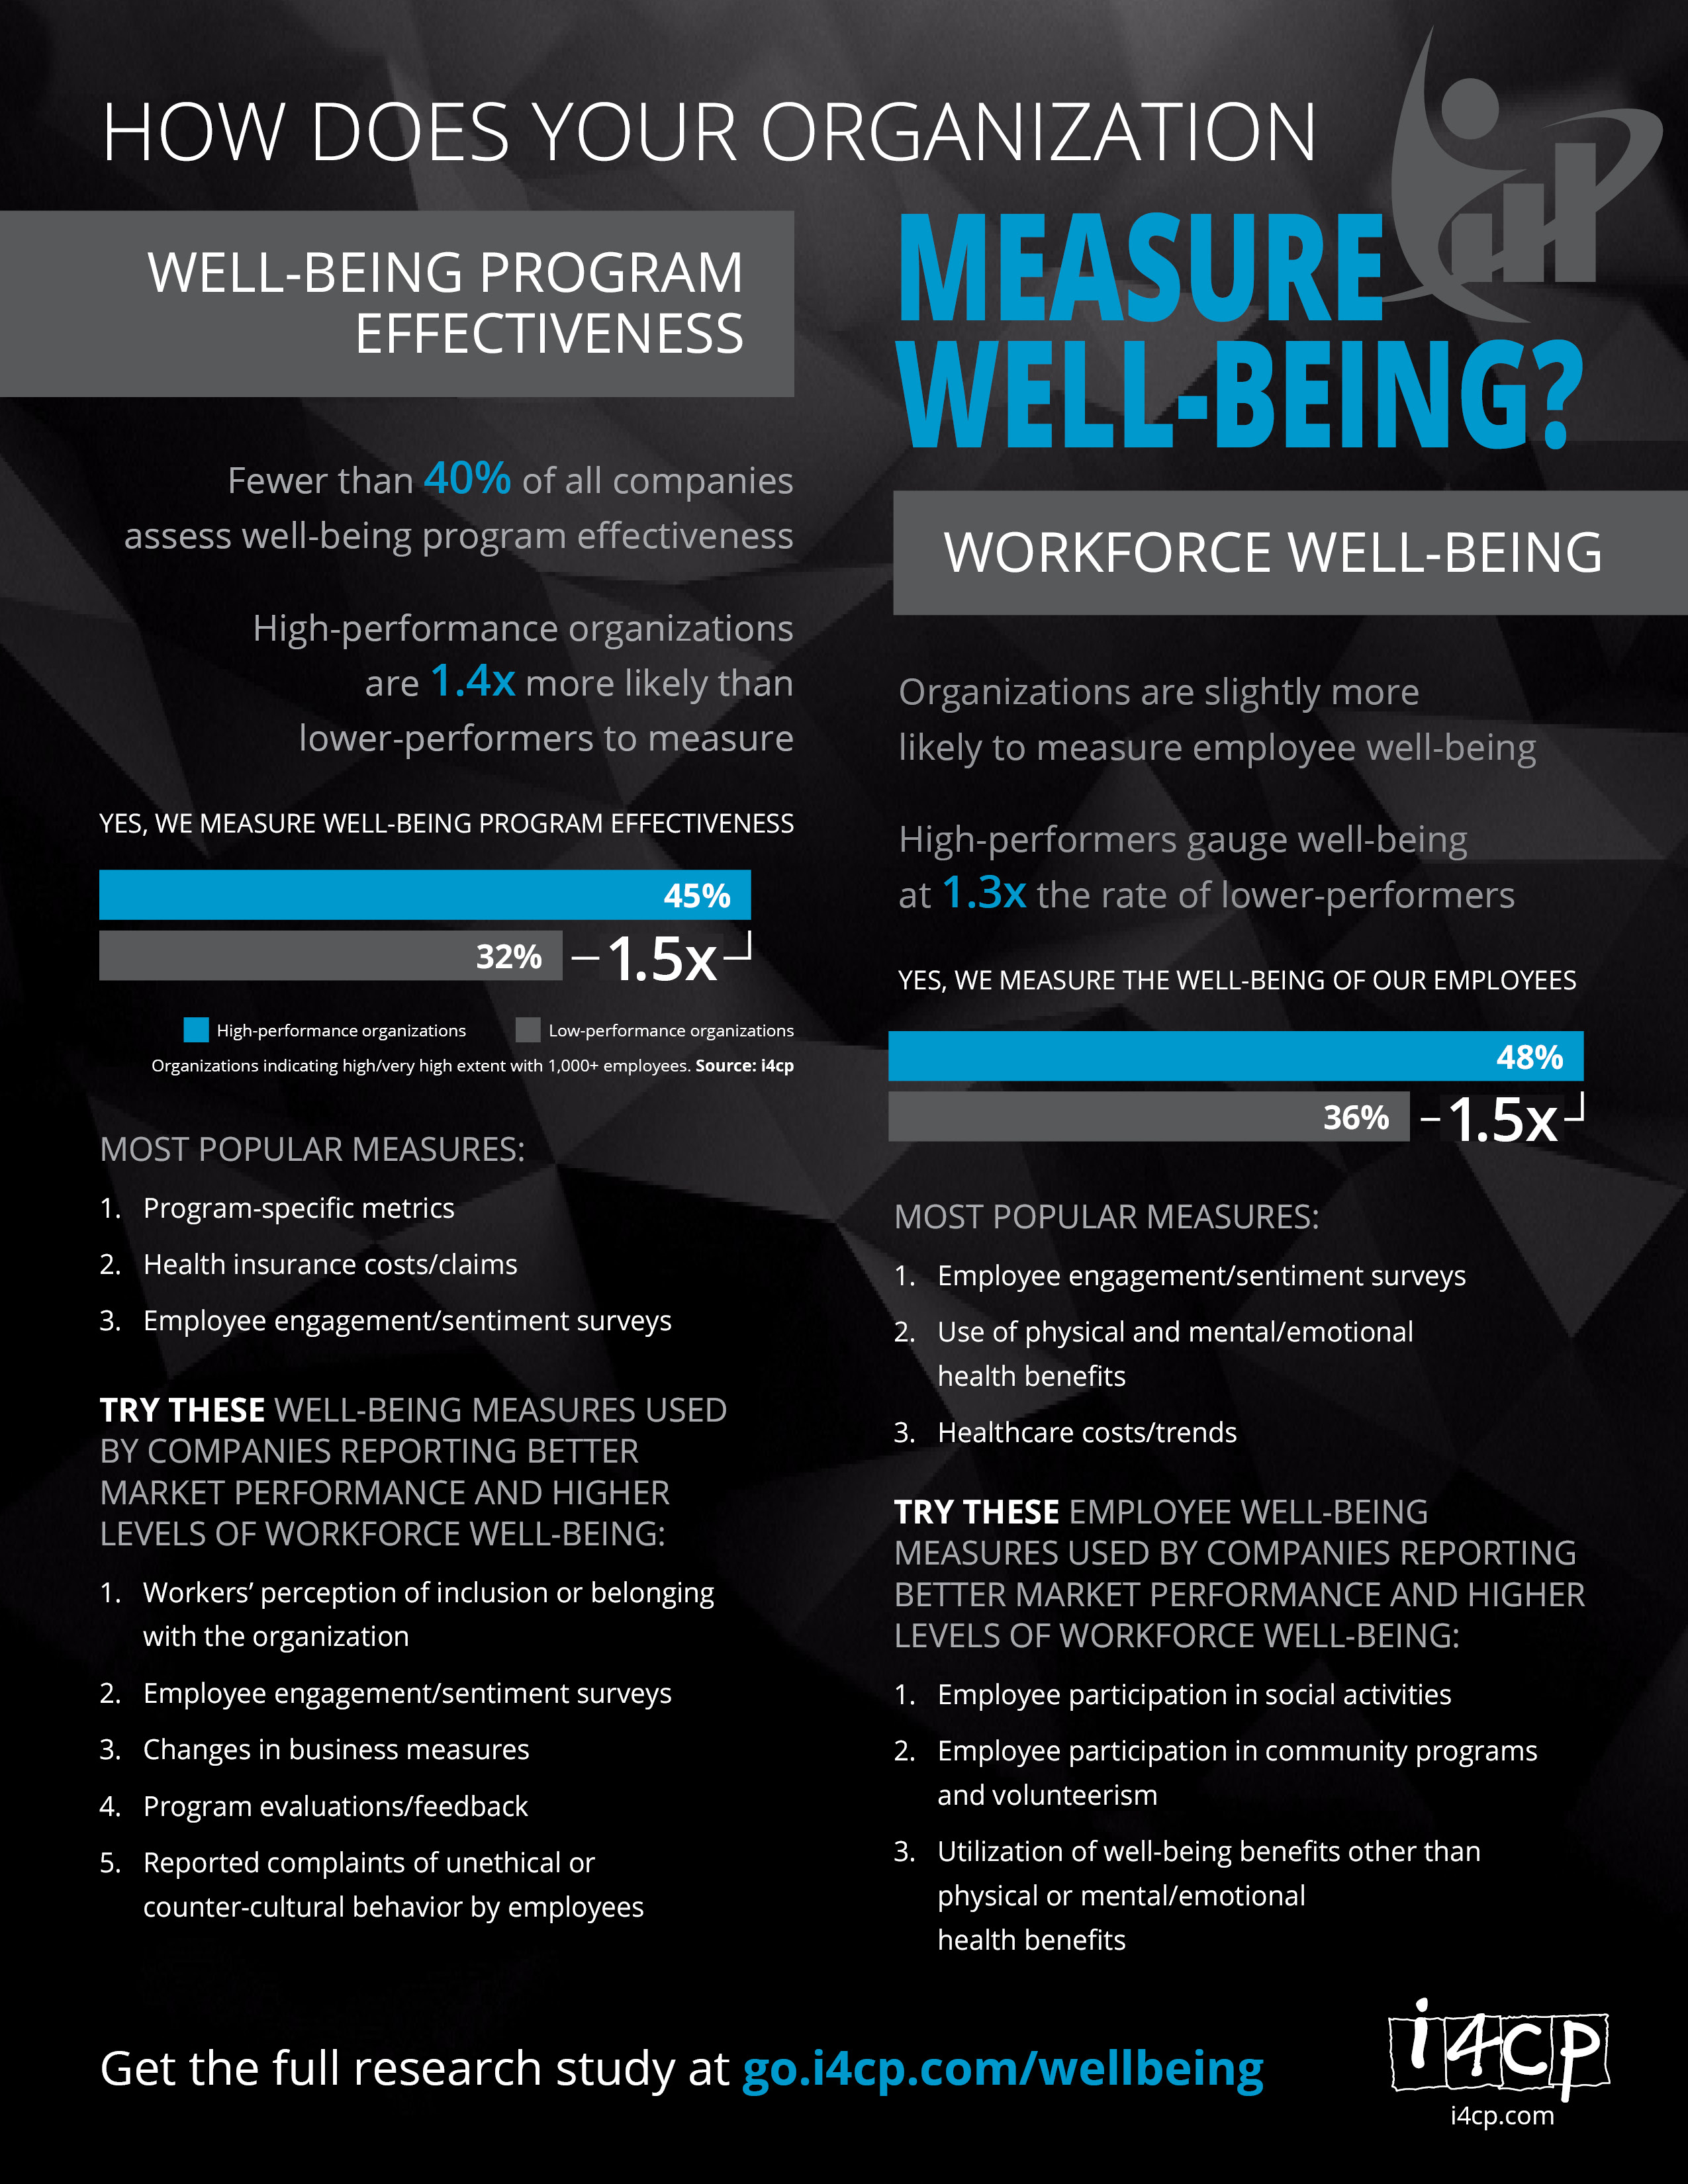 Measuring Well being in an organization